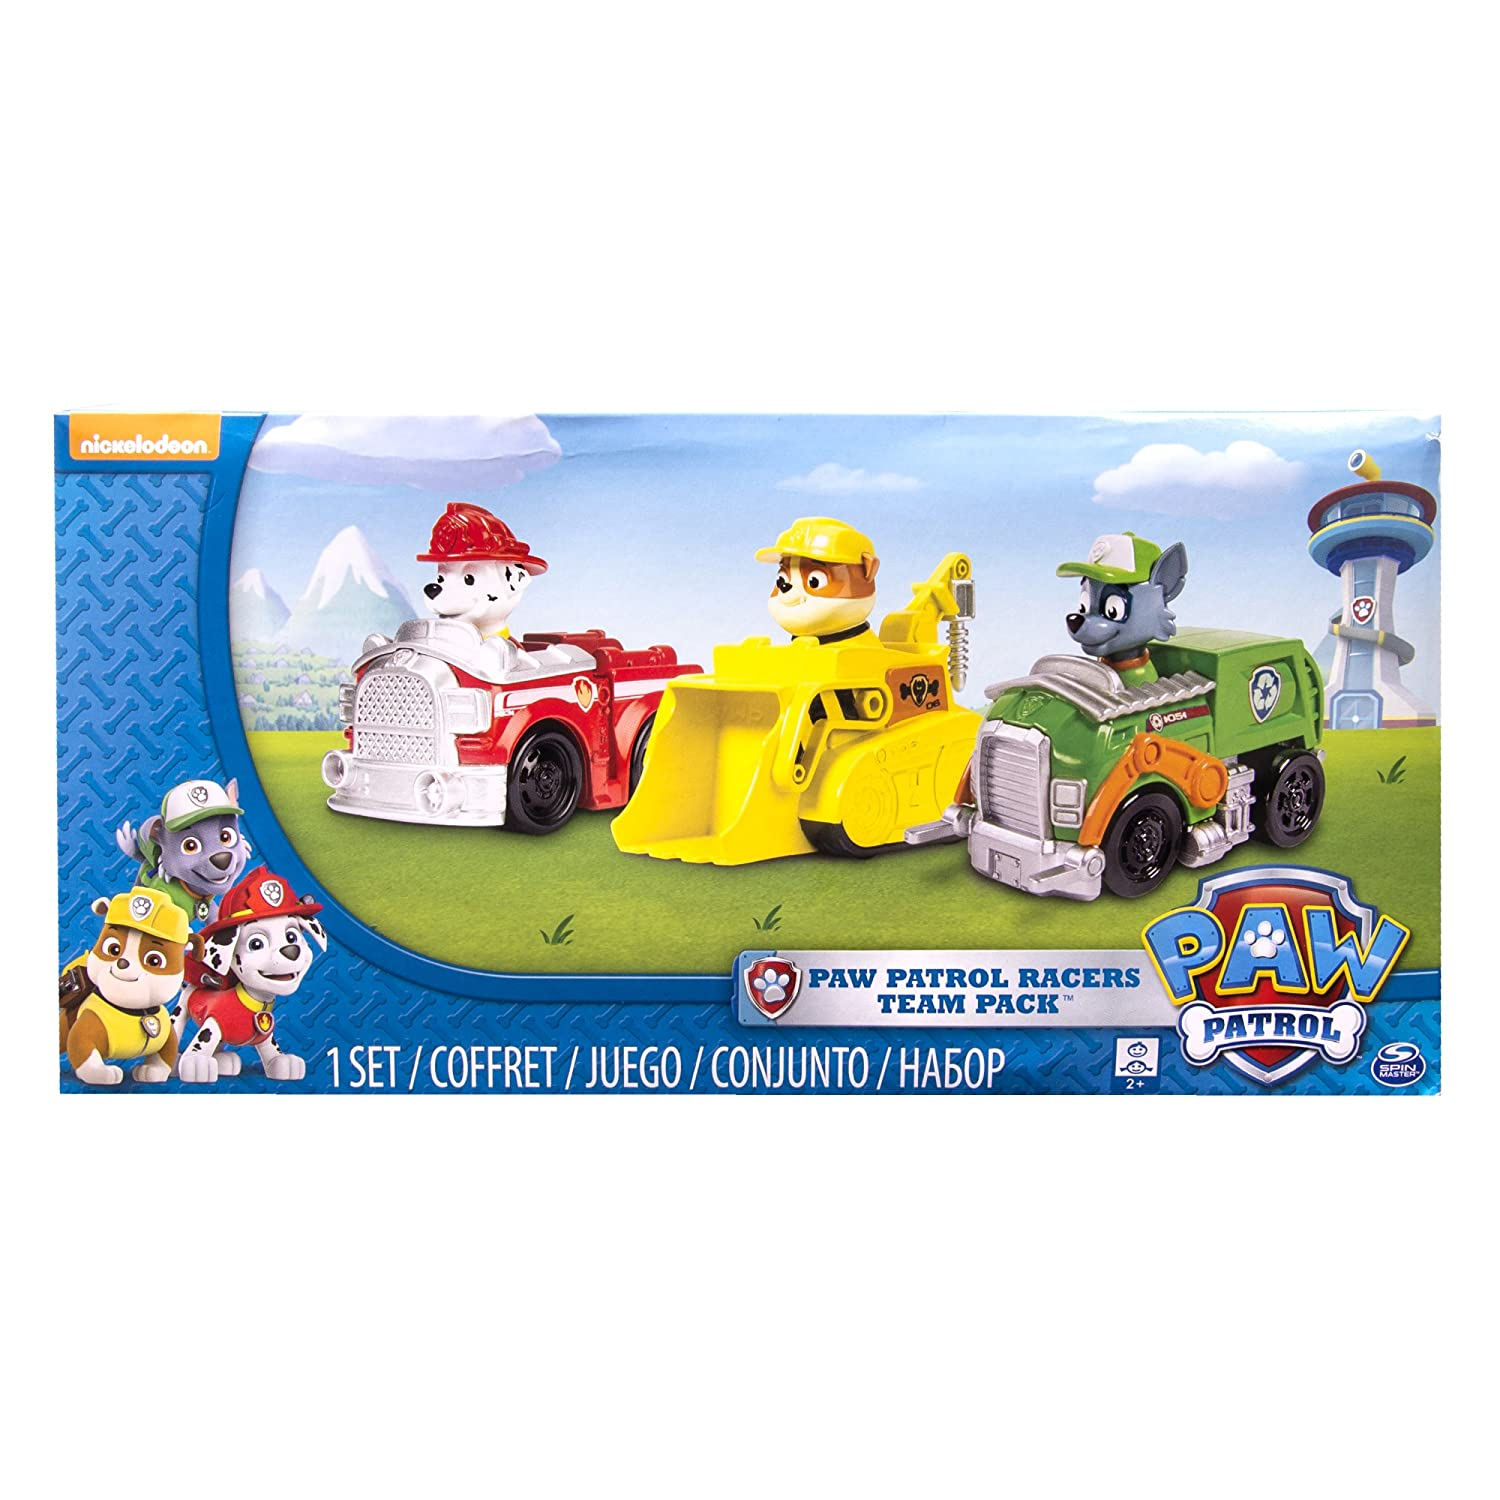 Paw Patrol - Rescue Racers 3pk Vehicle Set Marshal Rubble, Rocky Spin Master 6024058